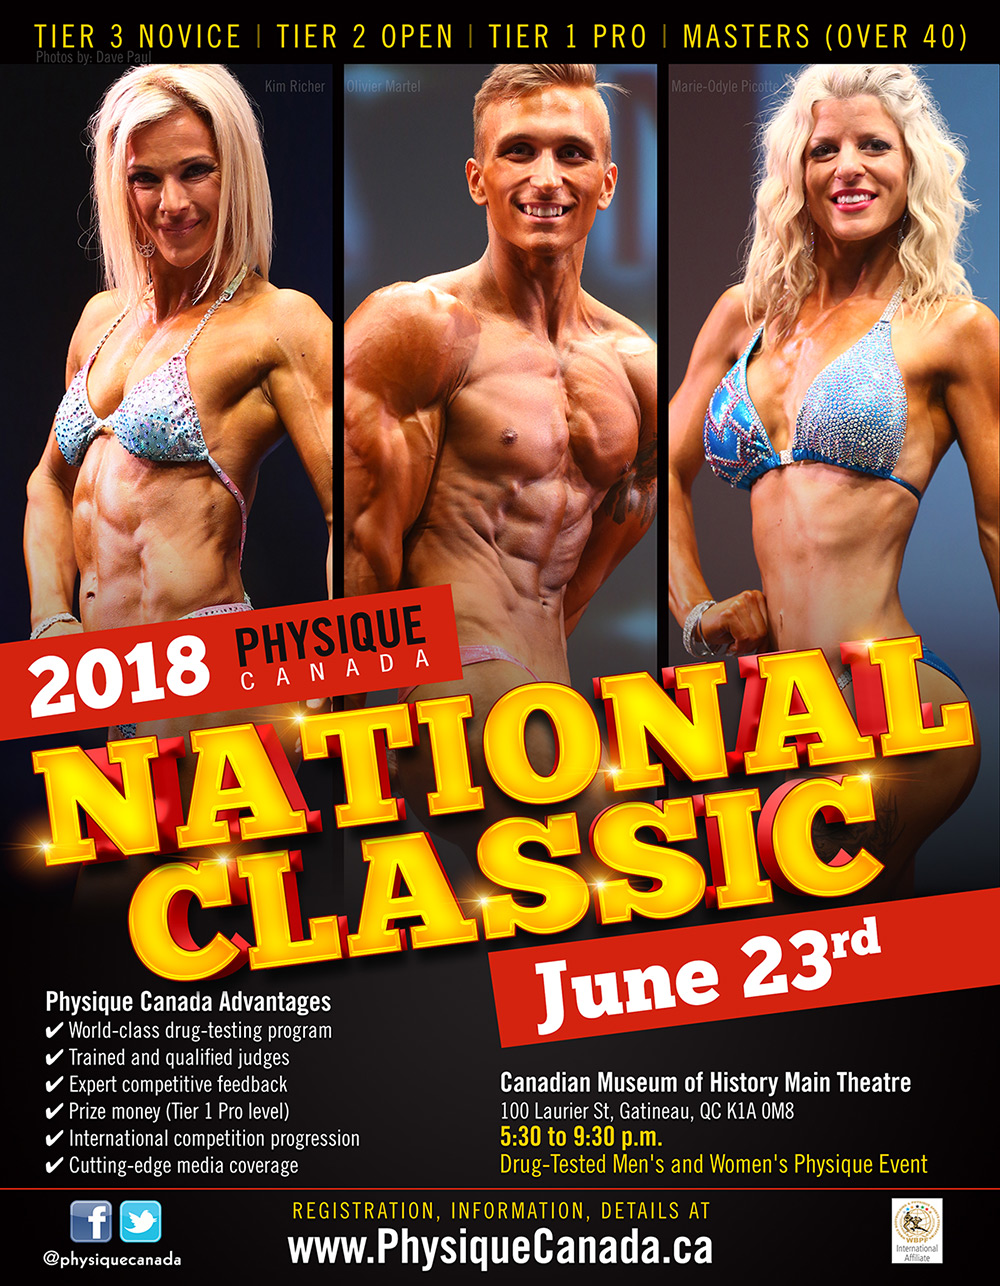 2018 National Classic